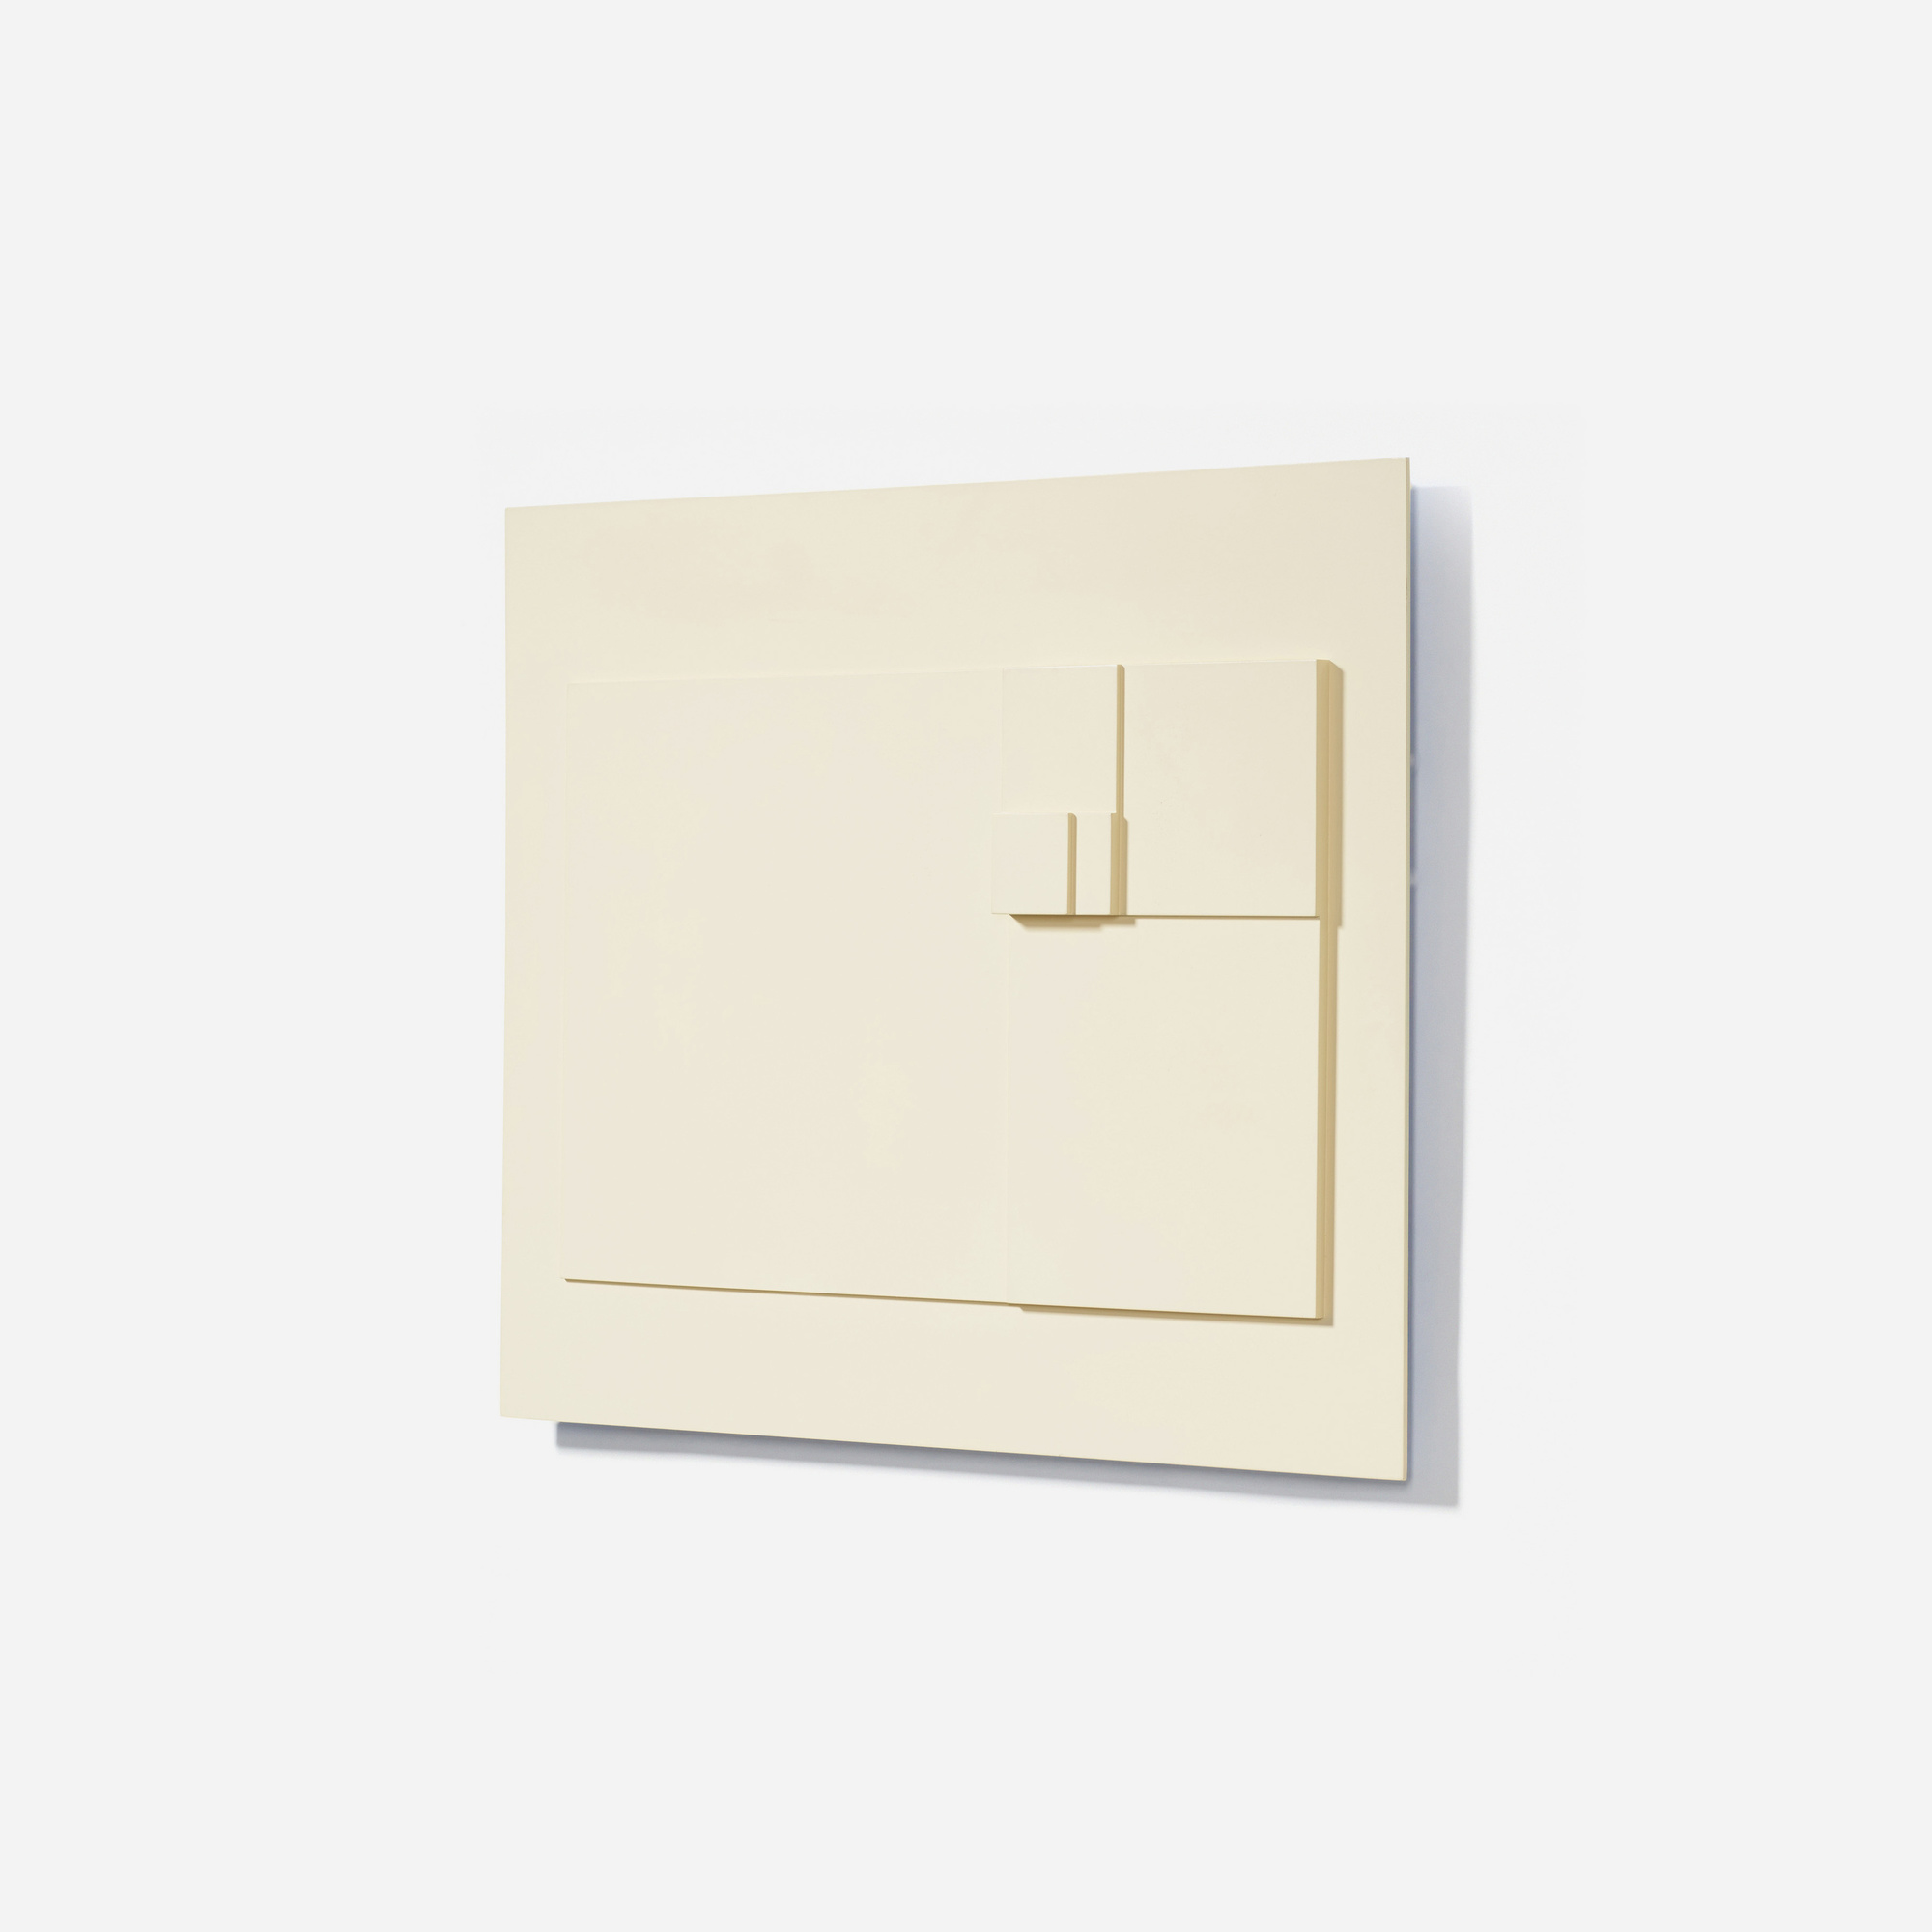 130: David Barr / Structurist Relief No. 22 (2 of 3)